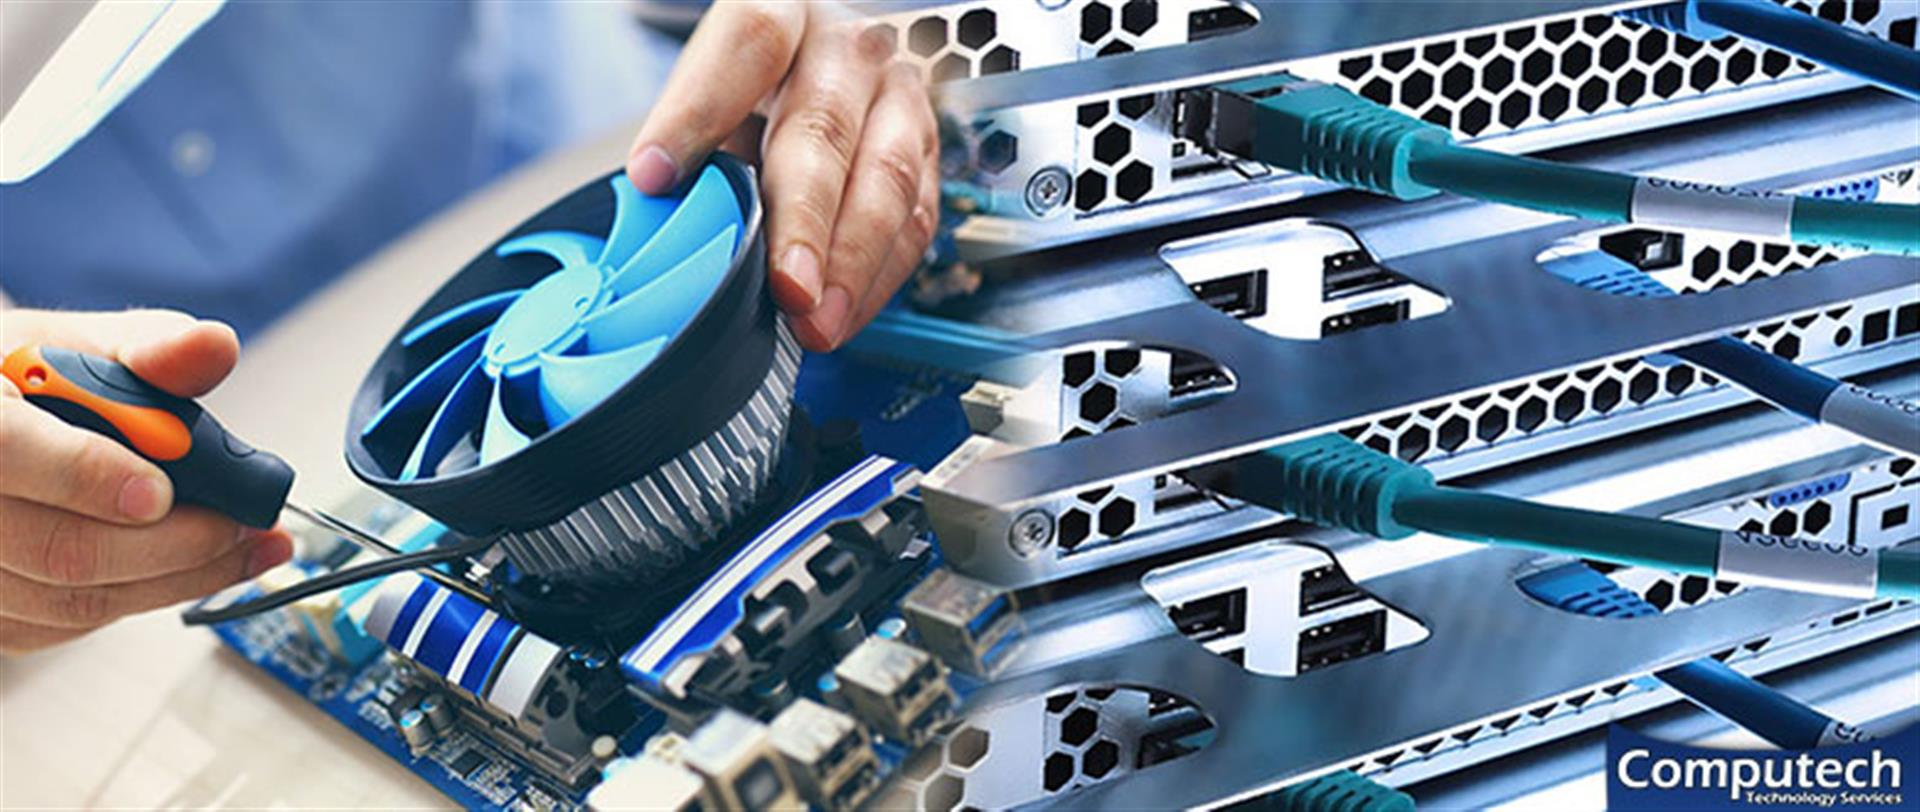 Ocilla Georgia On Site PC & Printer Repair, Network, Voice & Data Cabling Services